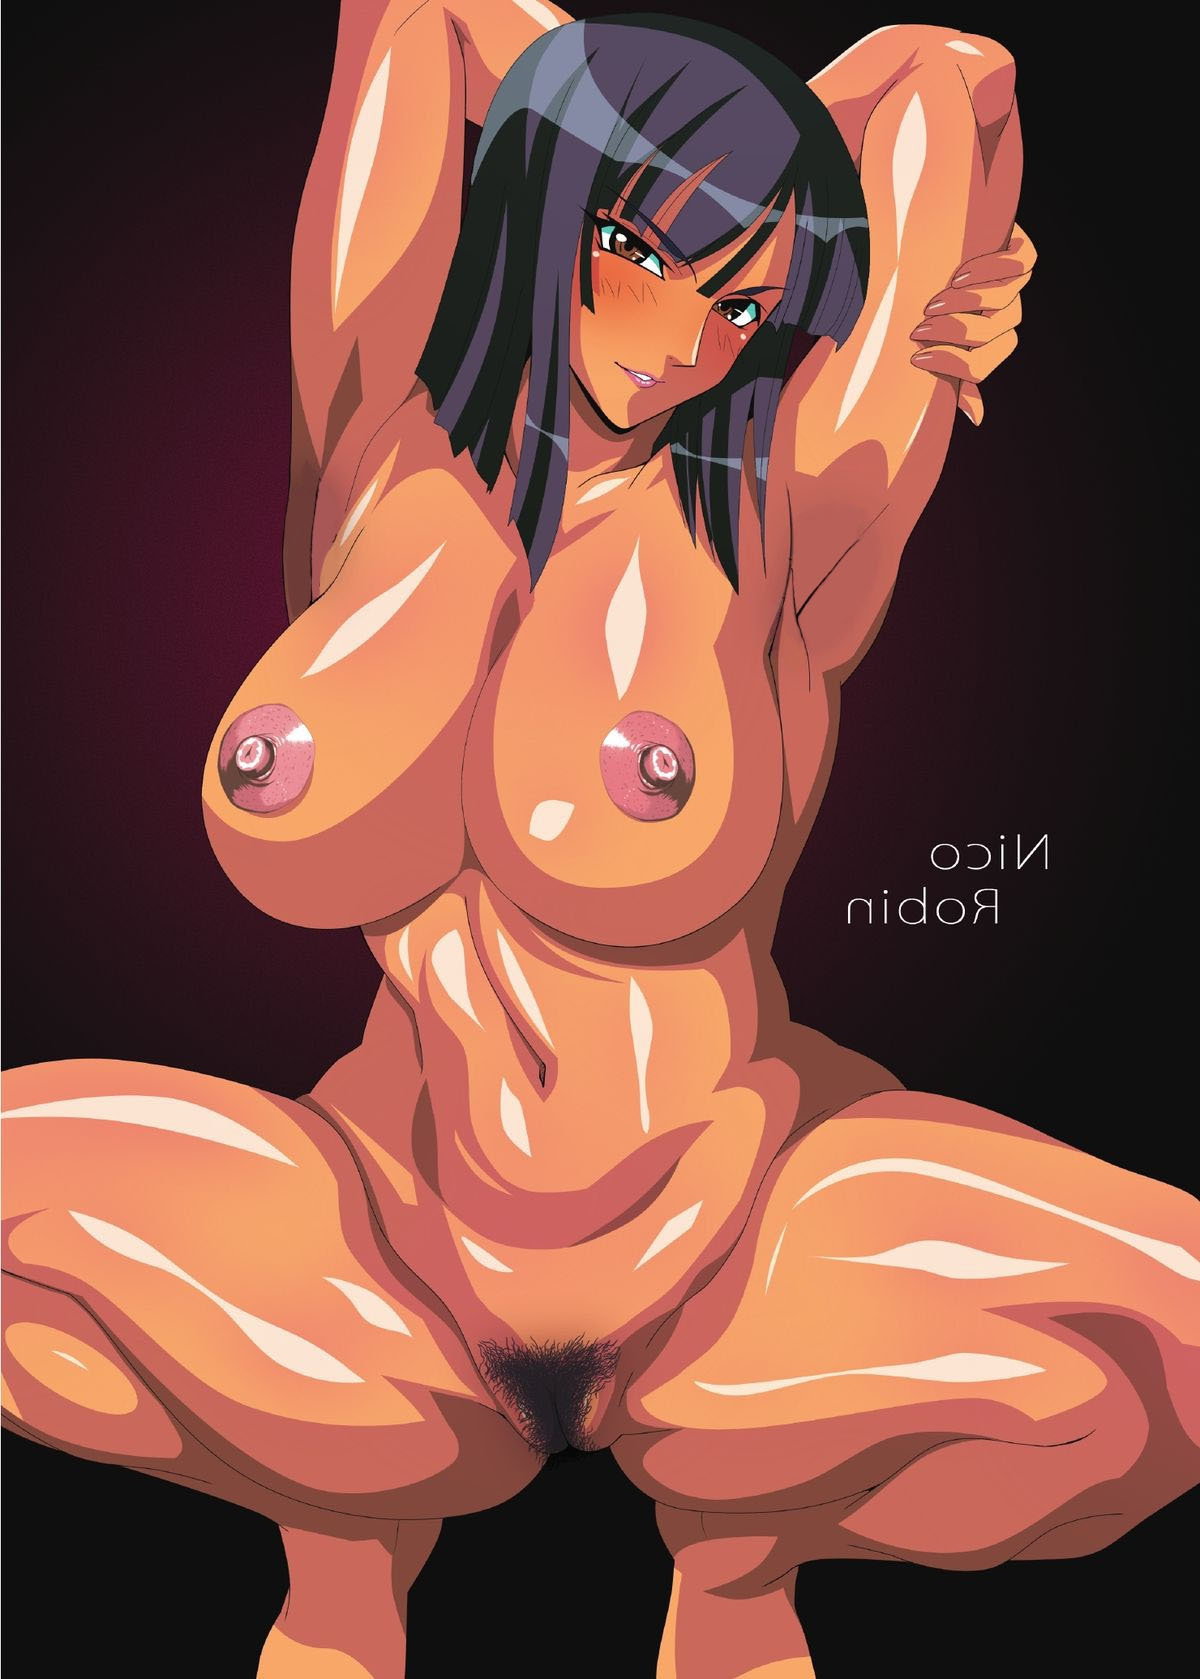 Toon sex pic ##0001301194848 areolae armpits artist request belly black hair blush breasts brown eyess erect nipples female highres jpeg artifacts large breasts navel nico robin nipples nude one piece photoshop pubic hair pussy seductive smile solo